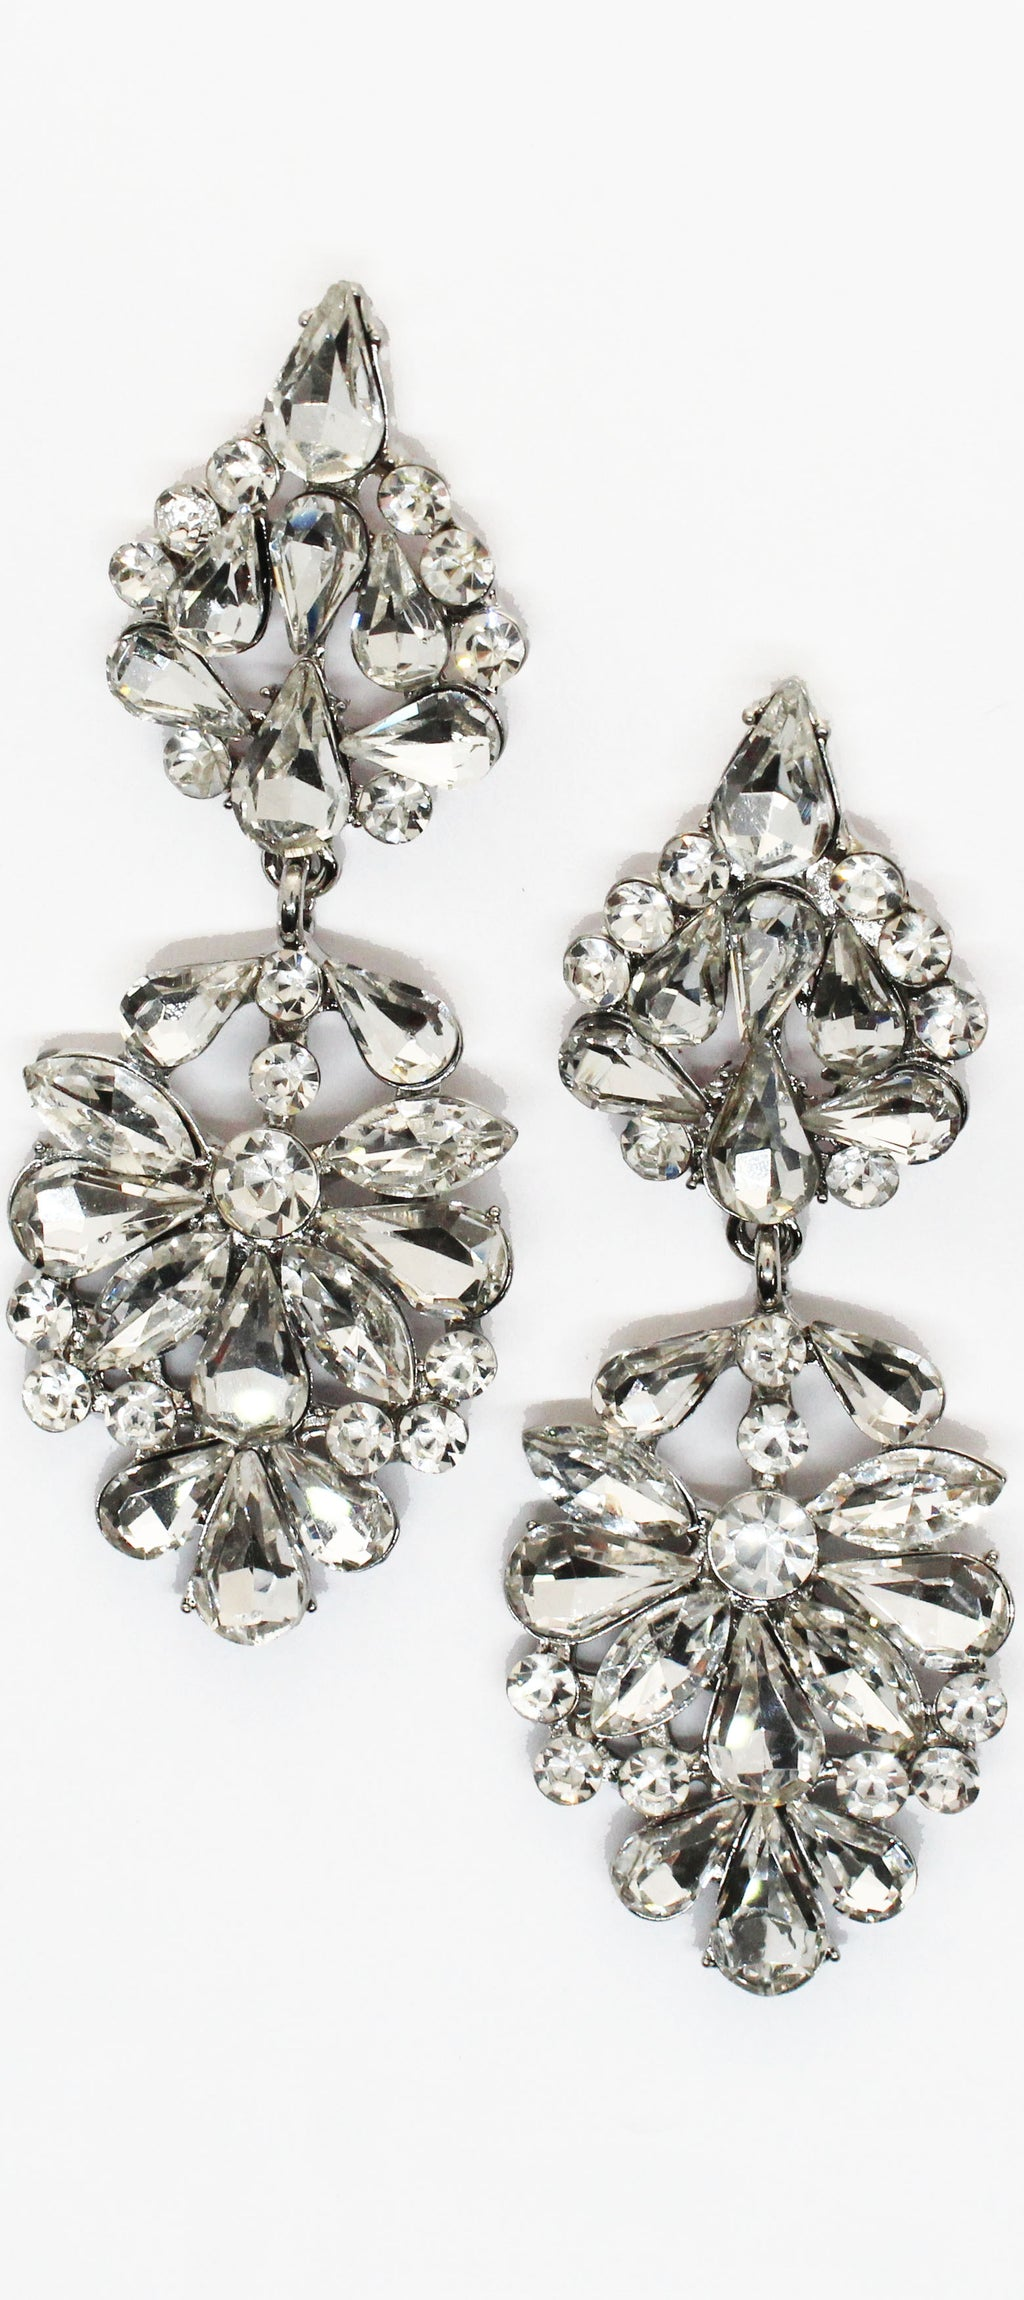 Bound to Wow Silver Rhinestones Earrings